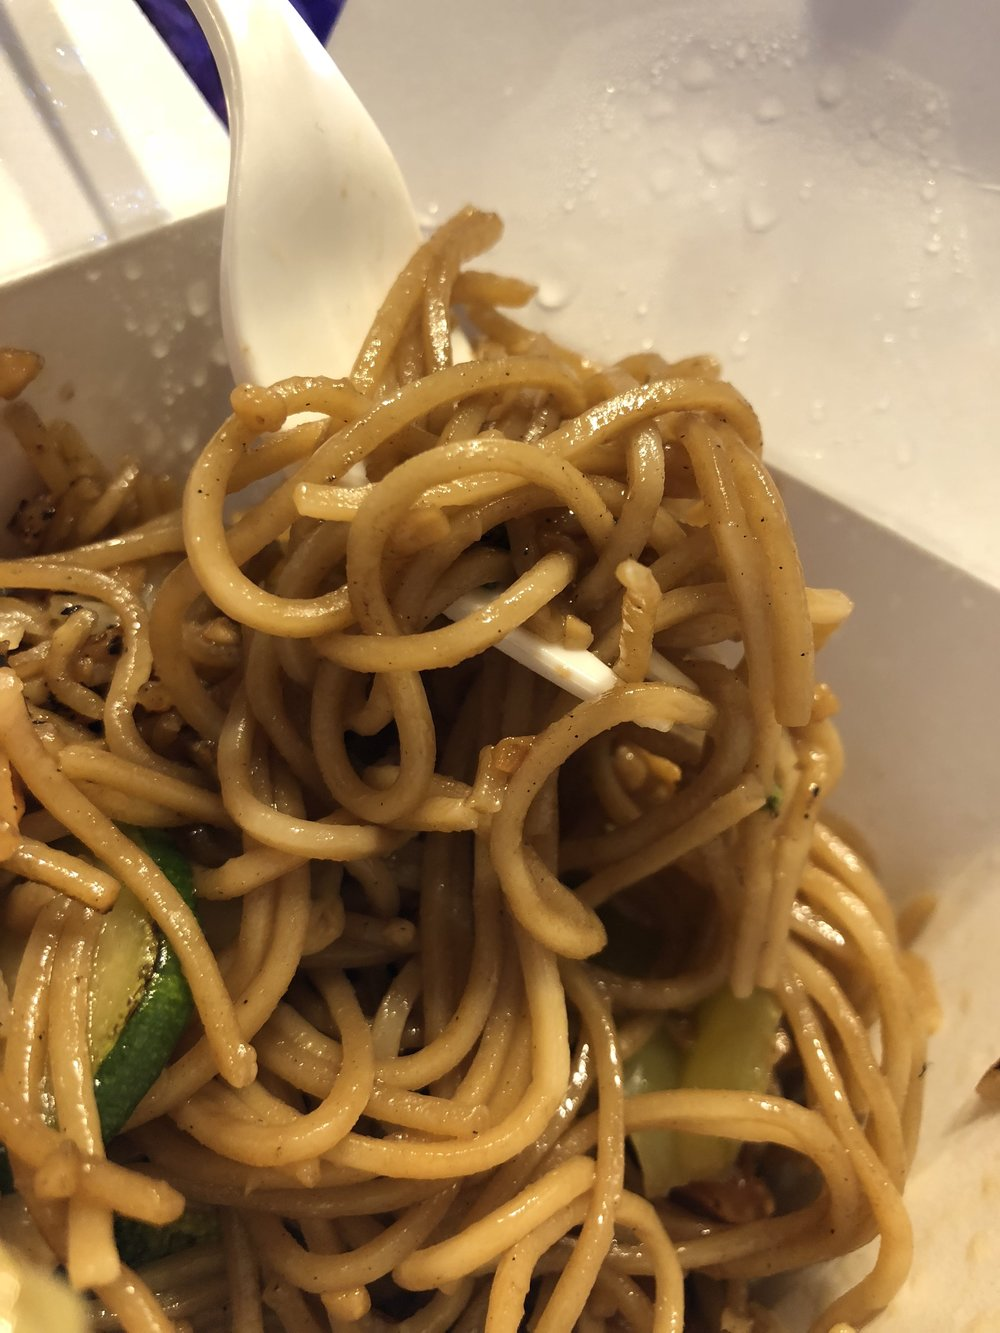 """rom the Loving Hunt on a take out box the """"Garden Chowmein."""" Noodles cooked with carrots, cabbage, zucchini, and green bell peppers mixed with soy sauce."""